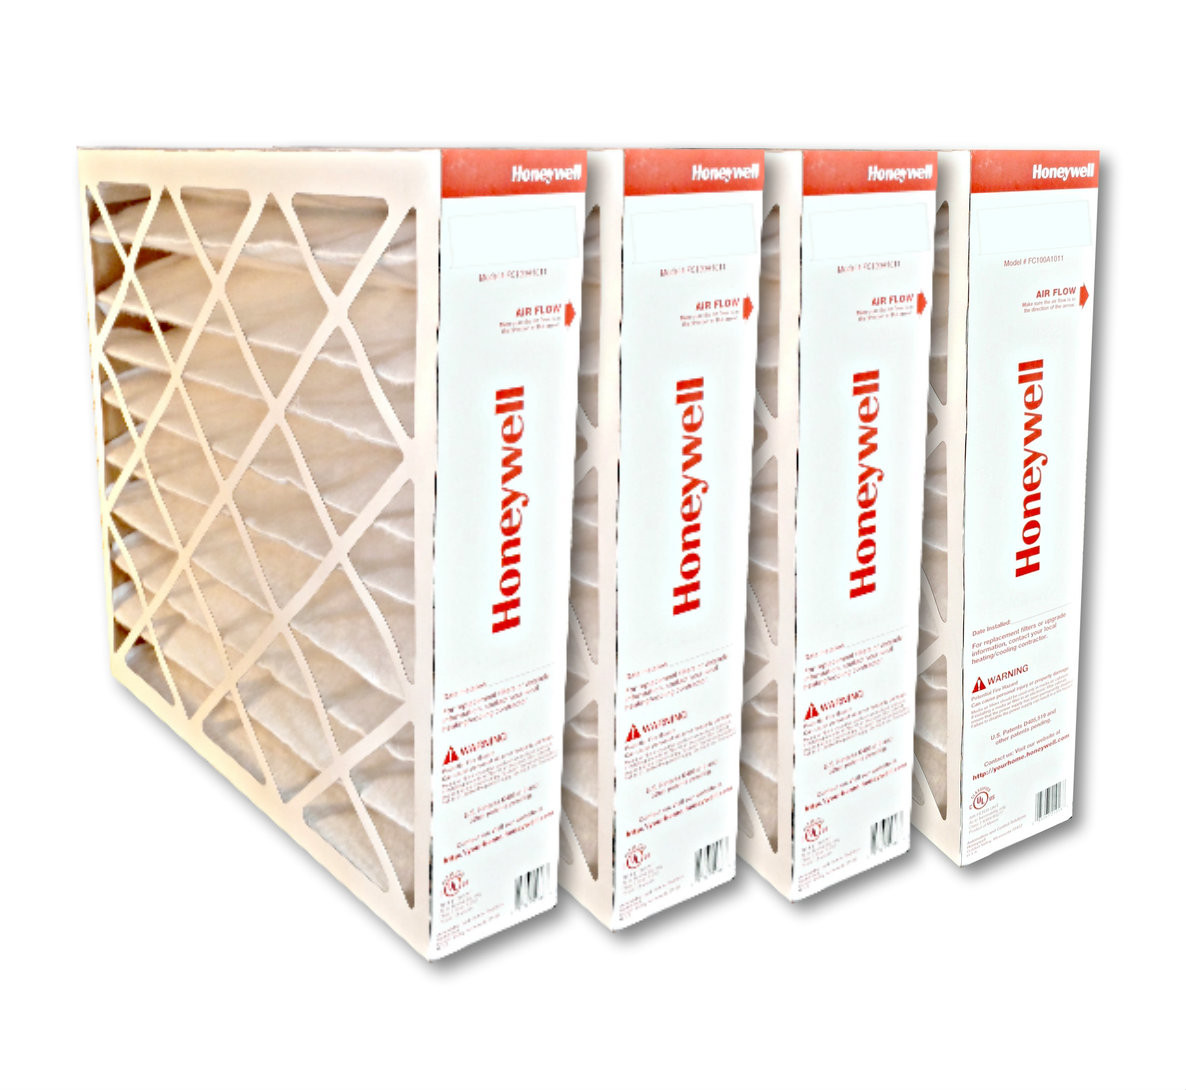 Honeywell FC100A1037 20x25 MERV11 pleated media air filter for use with  heat pump, furnace or